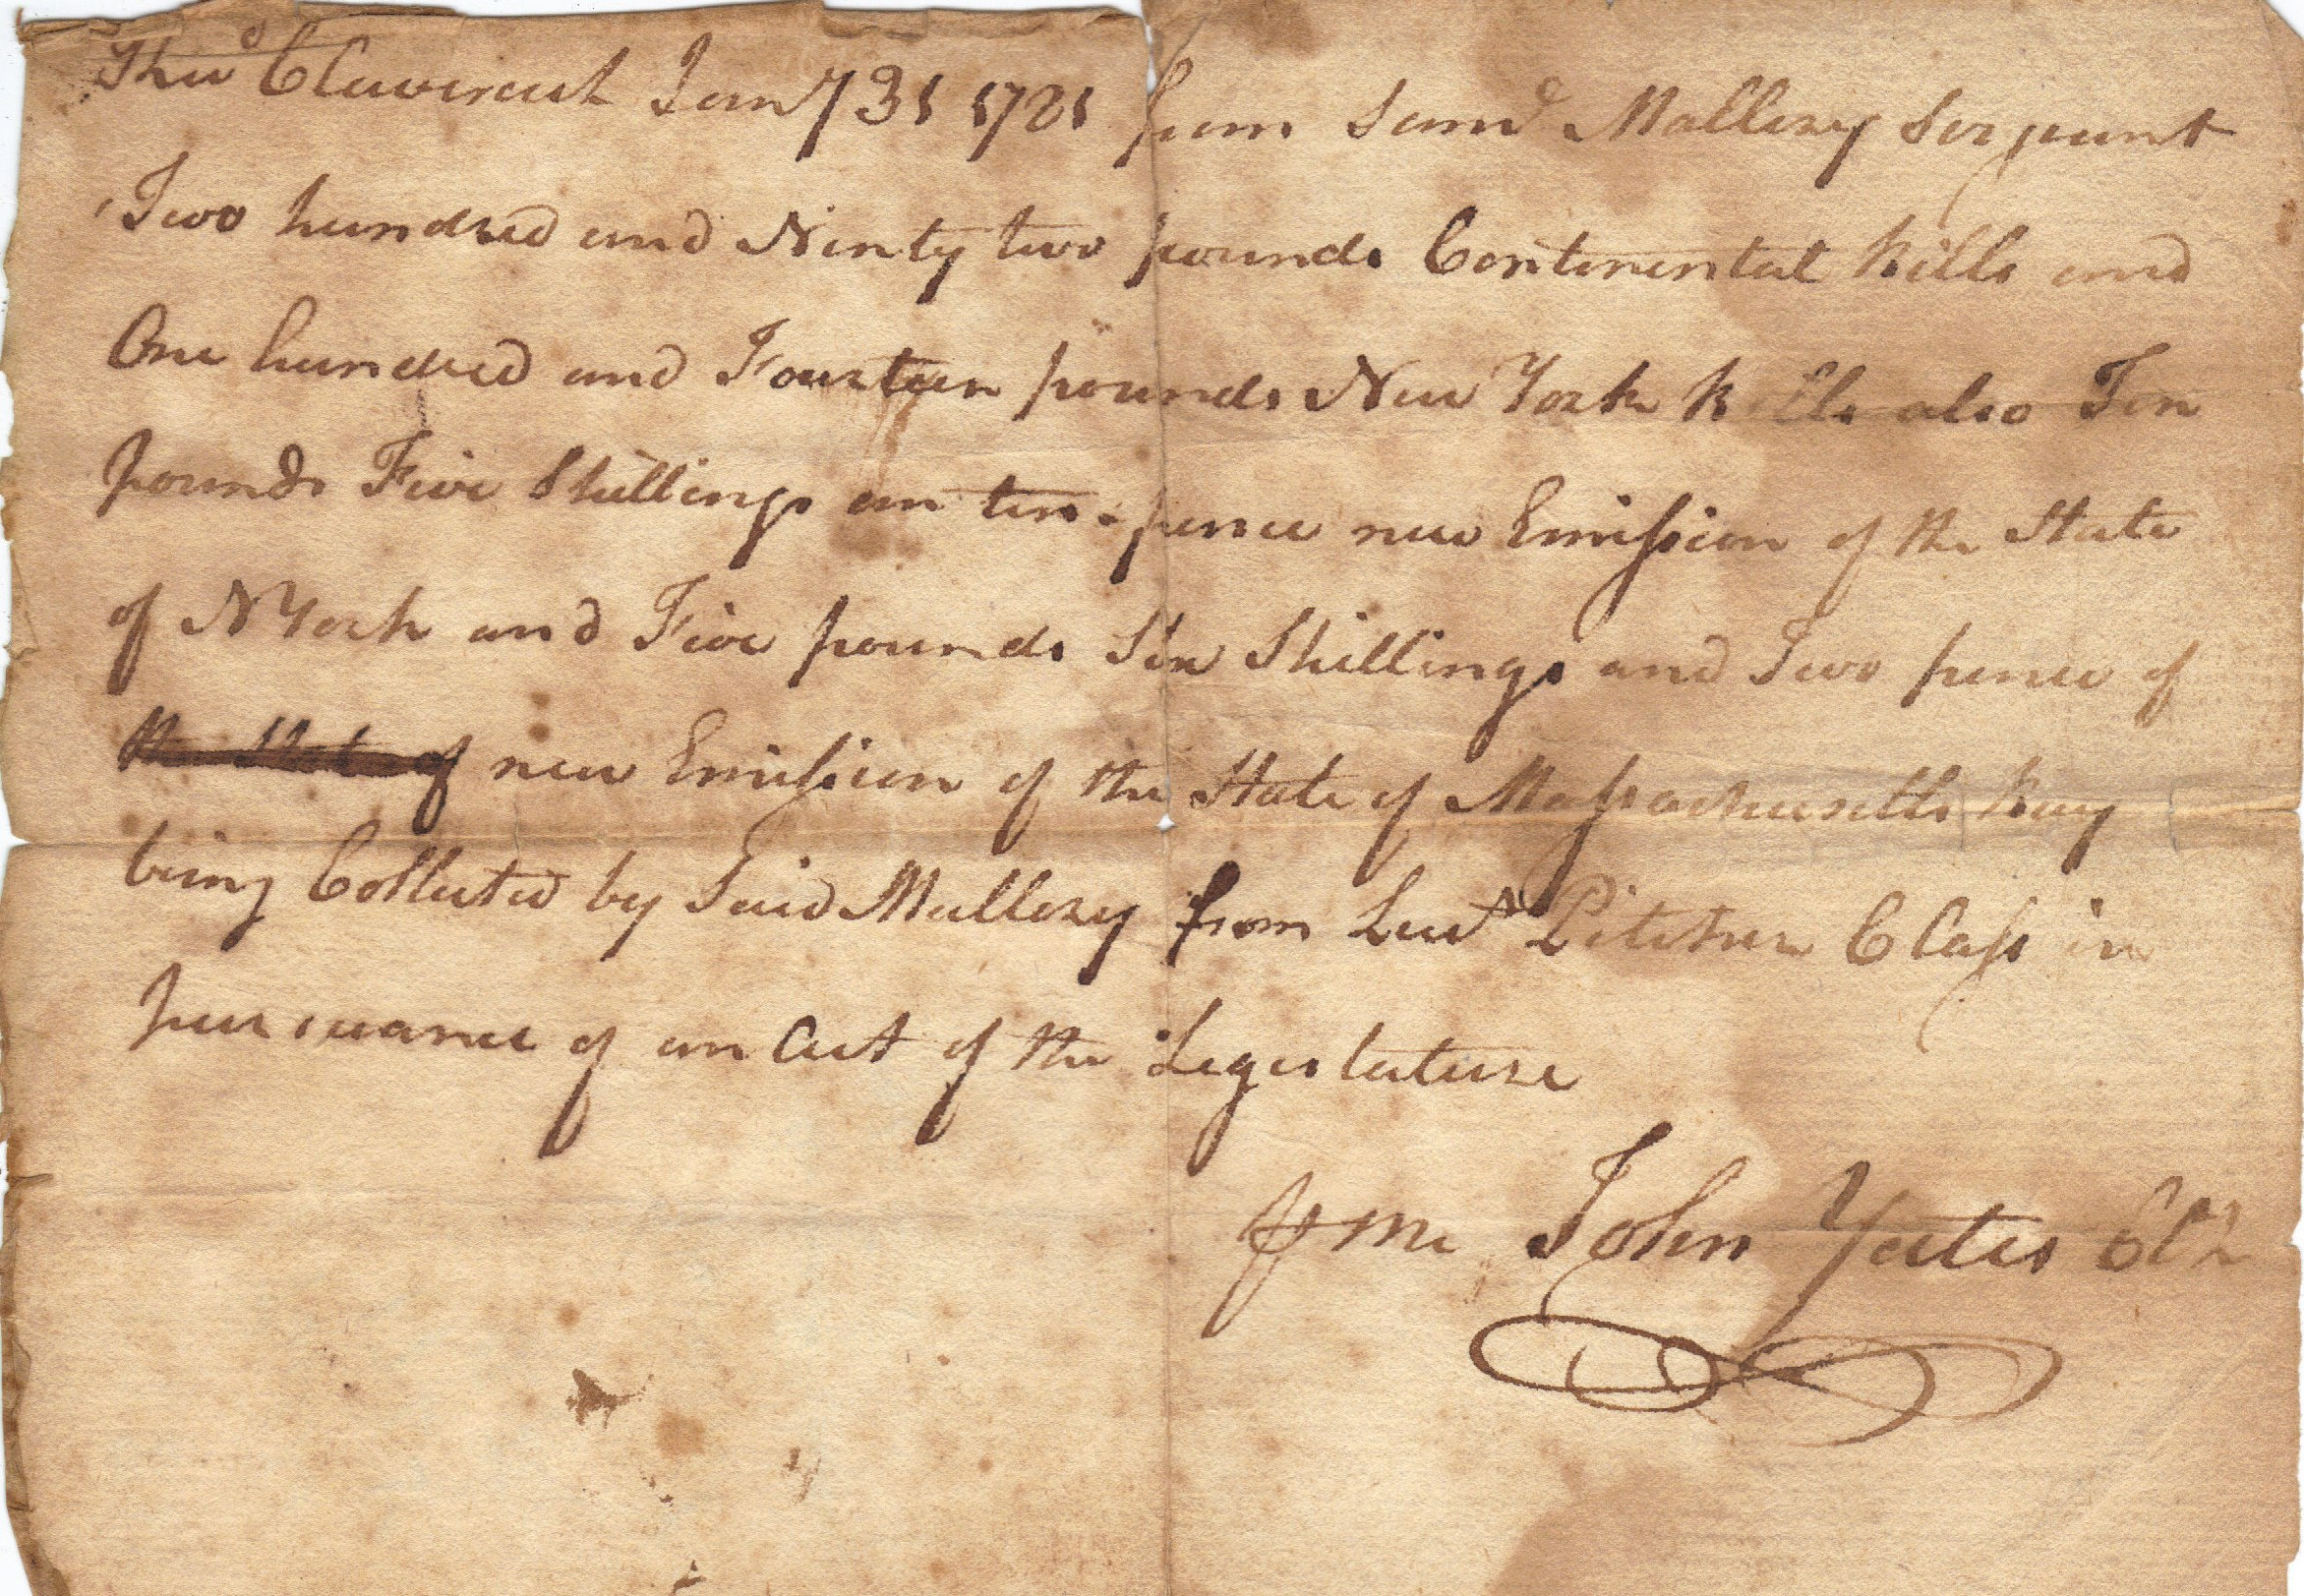 Old Documents From Columbia County, New York, USA